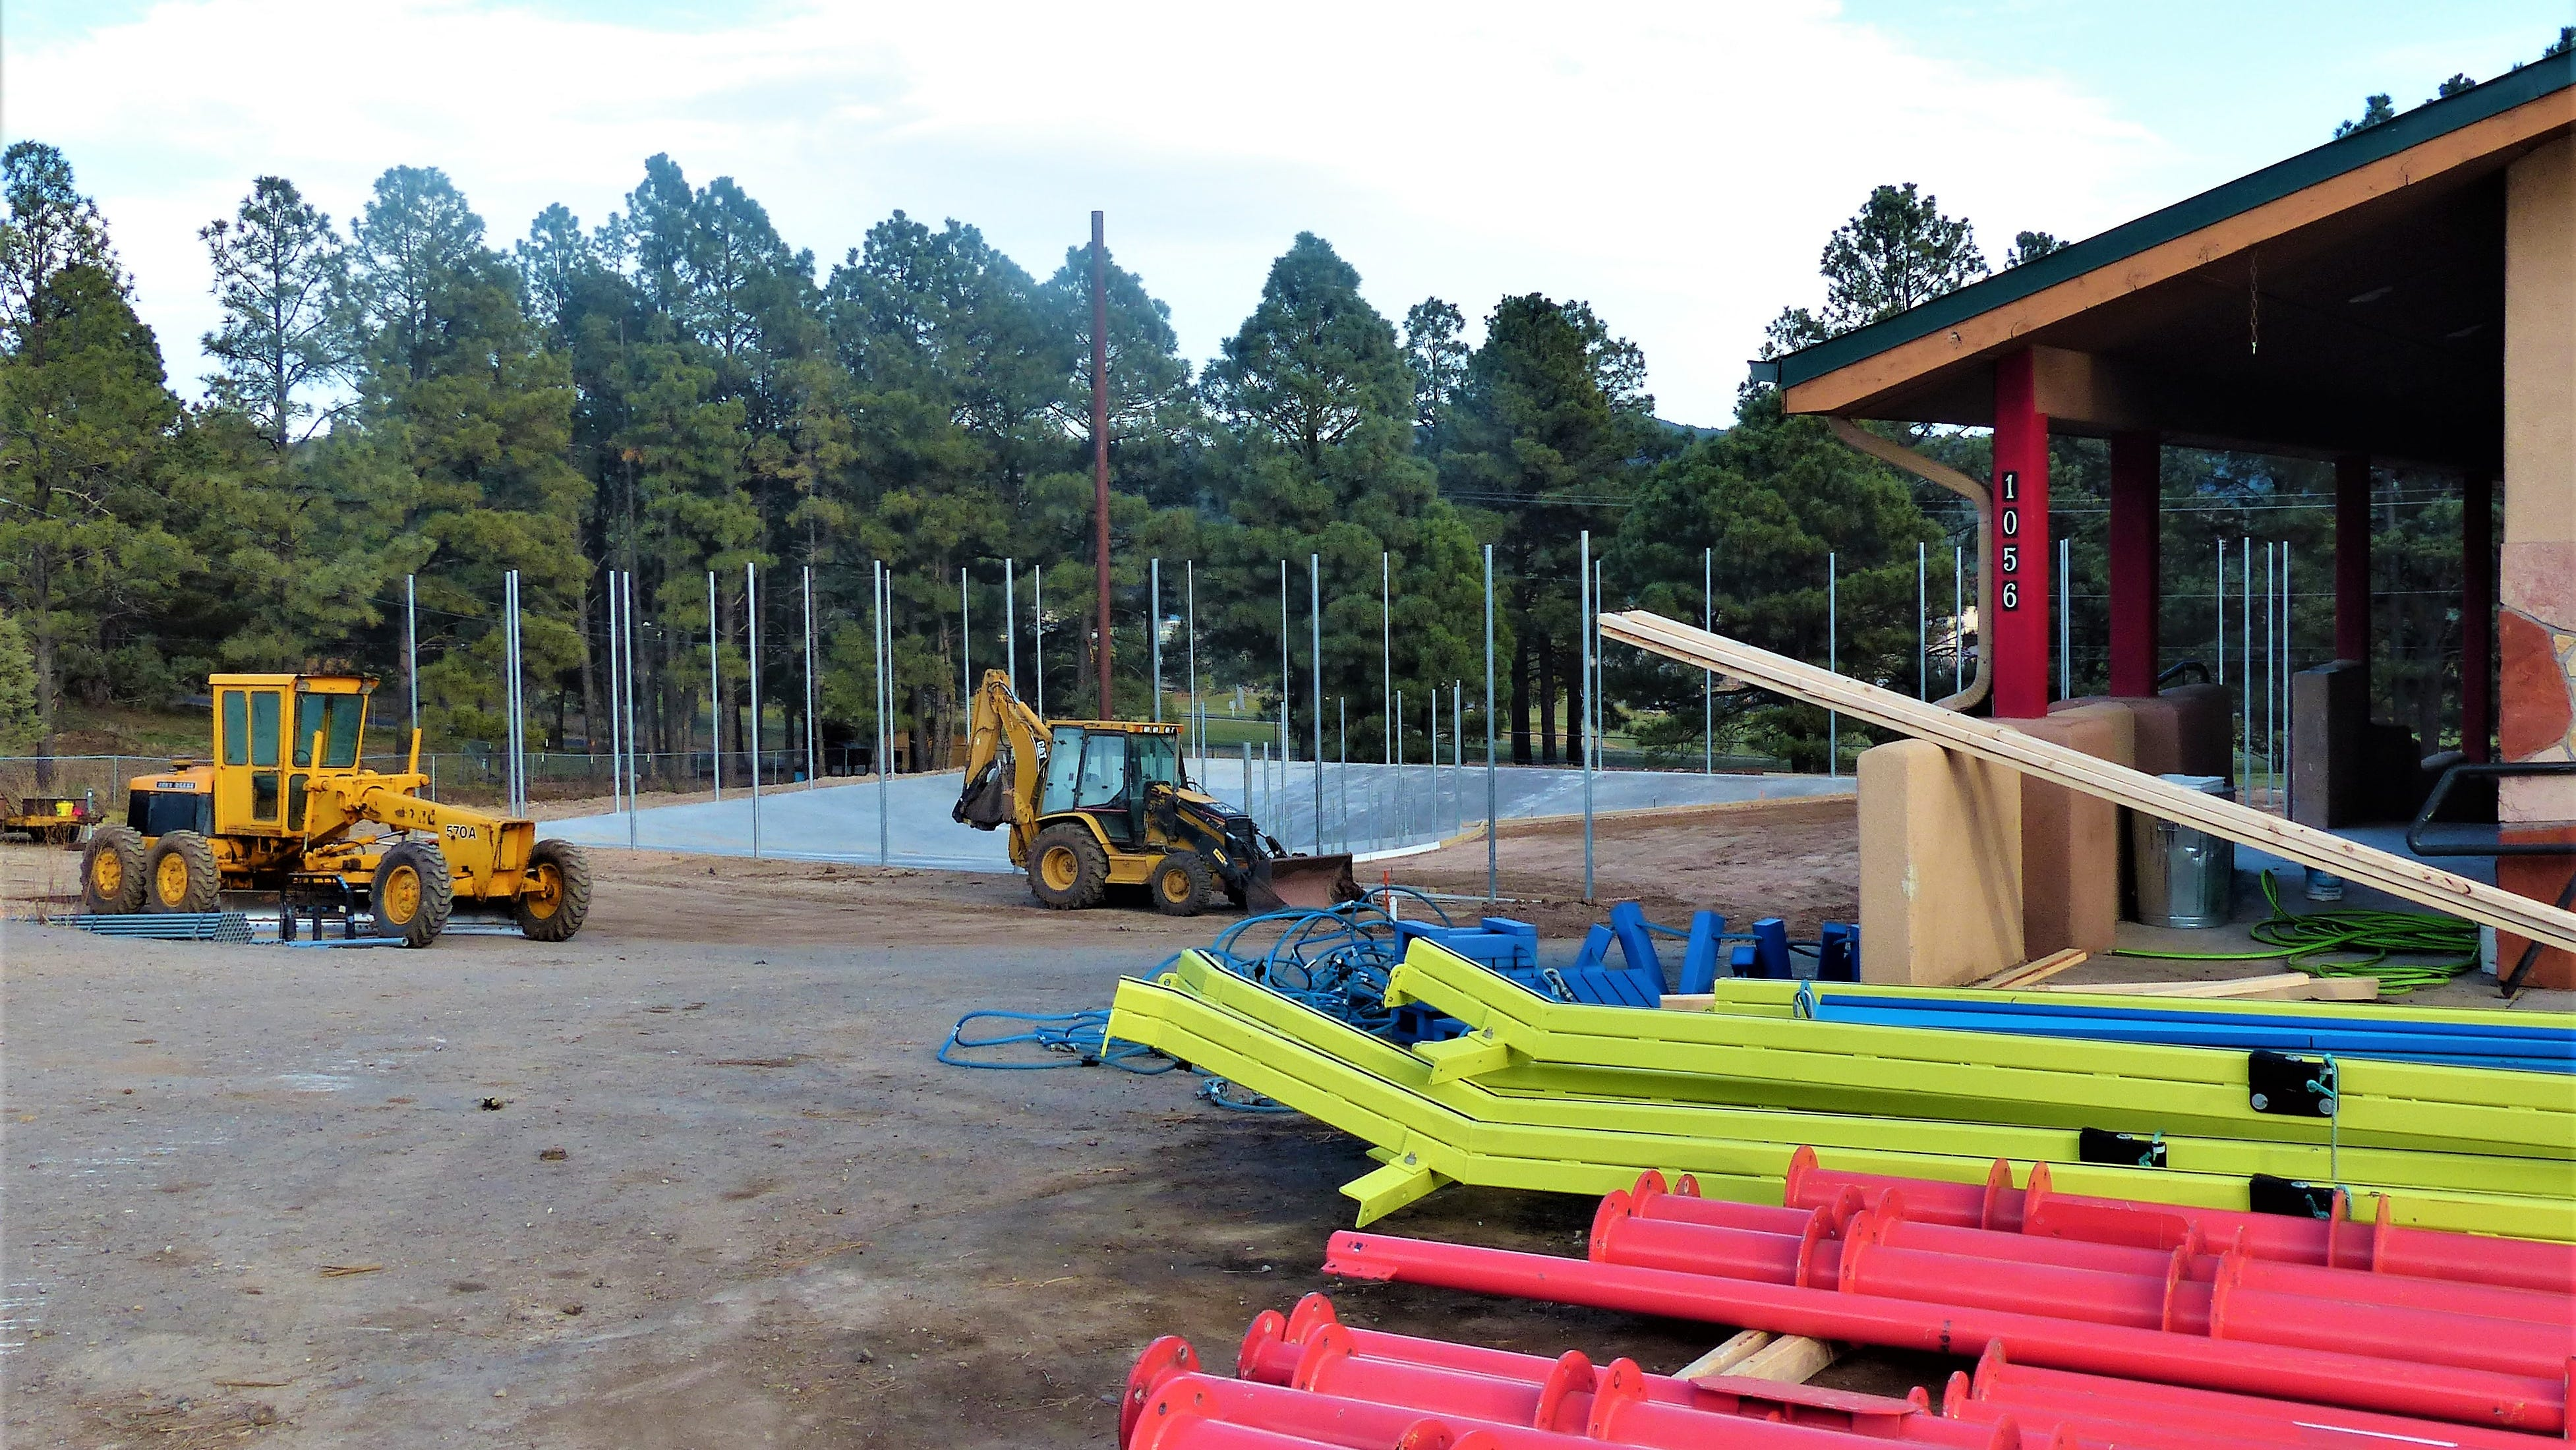 Work is underway at the recreation site on Mechem, former site of a home improvement and equipment rental store.